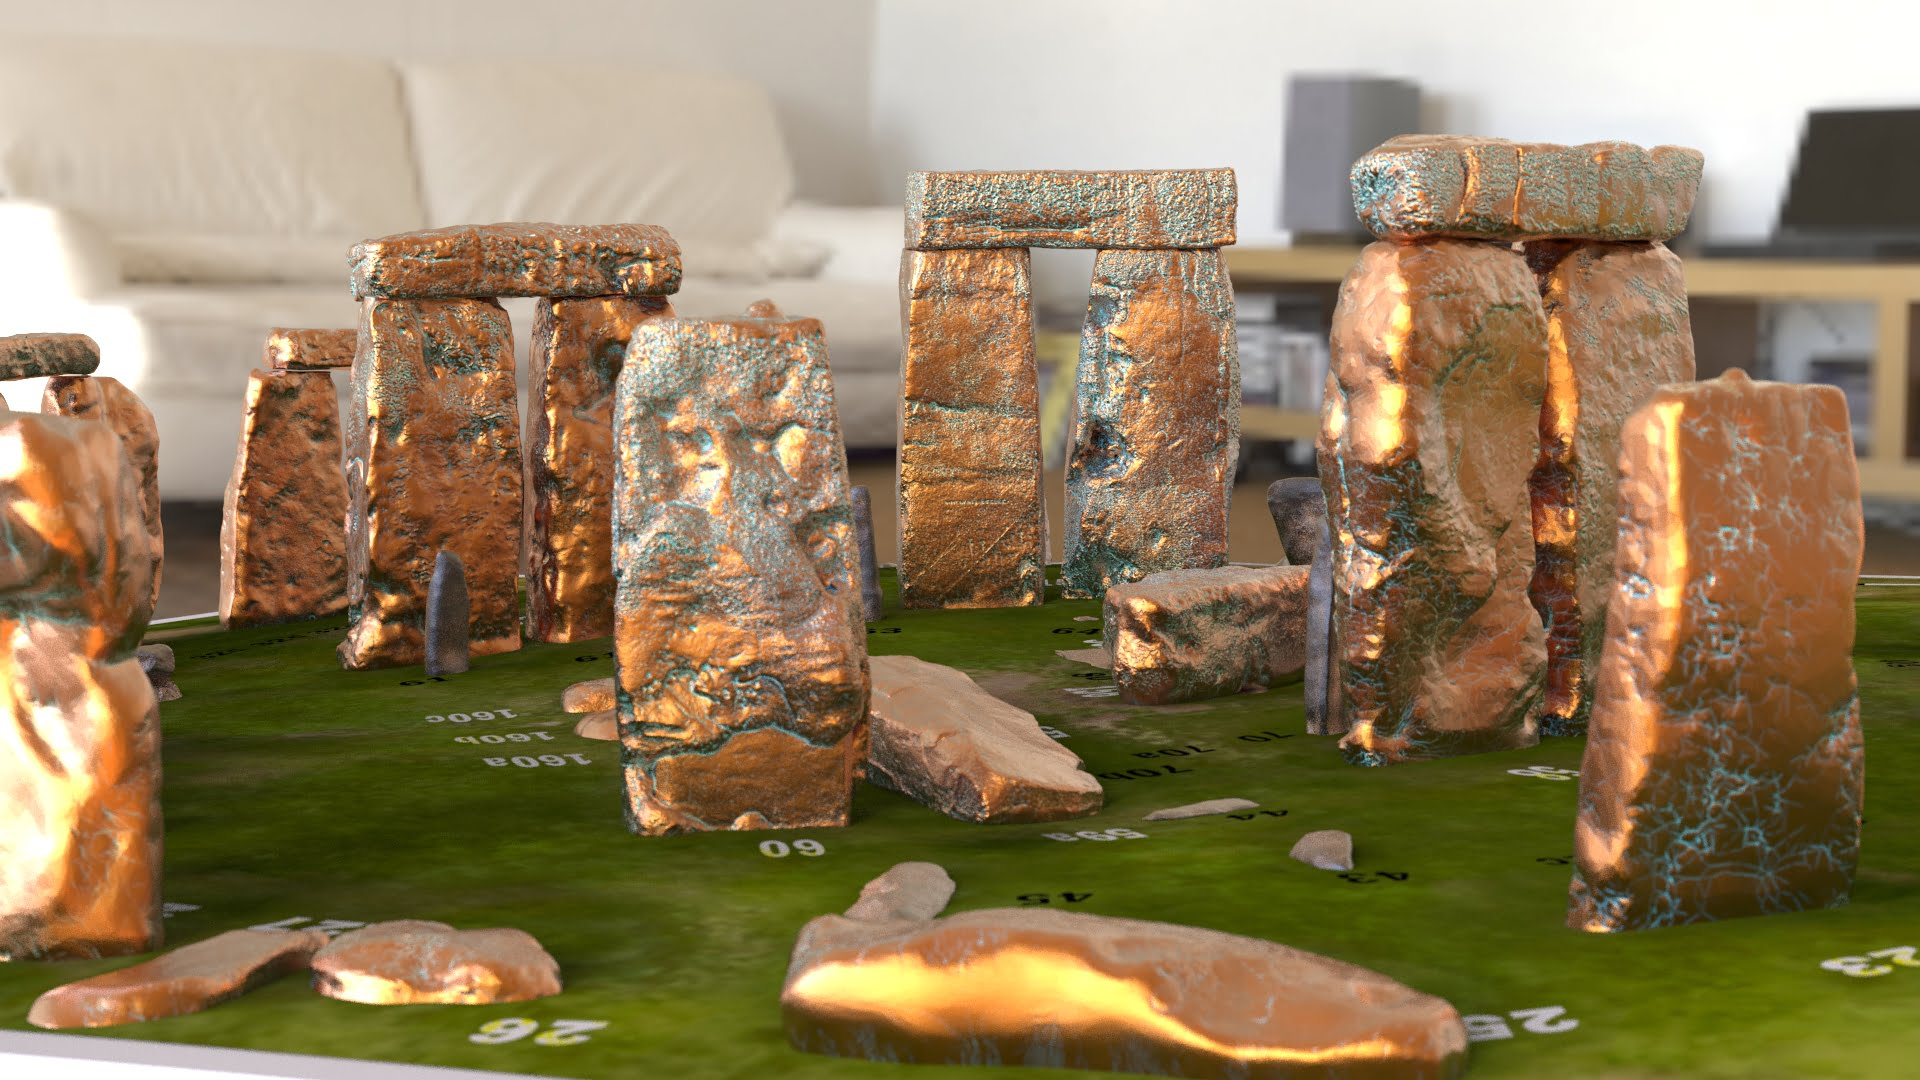 Buy Stonehenge Models: Copper verdigris sarsens with rusted iron bluestones Stonehenge model replica on grass decal bass numbered stones Camera 1.66  - Full set -